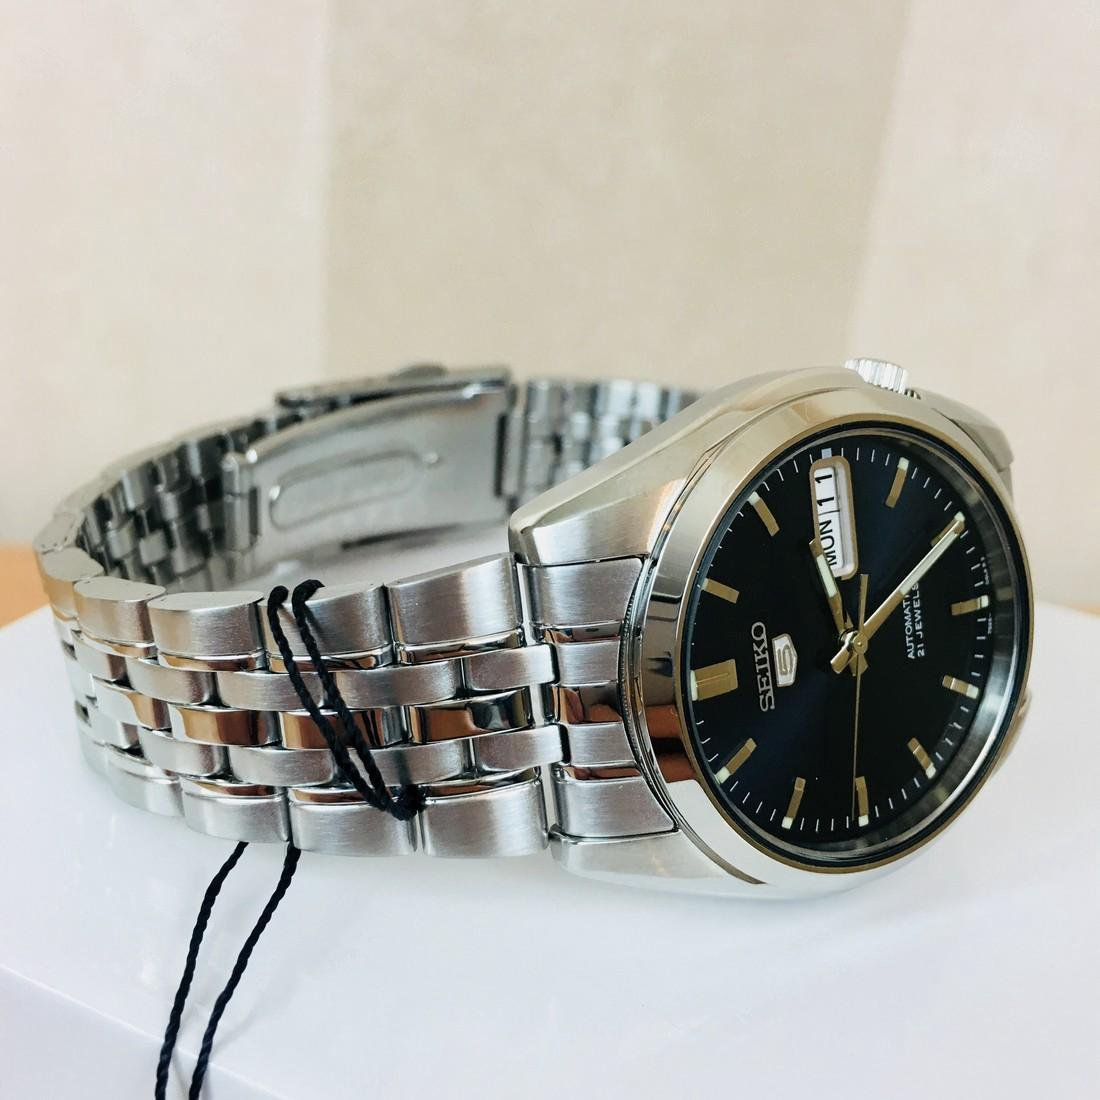 SEIKO 5 Men's Automatic Watch Brand New with Box - 7